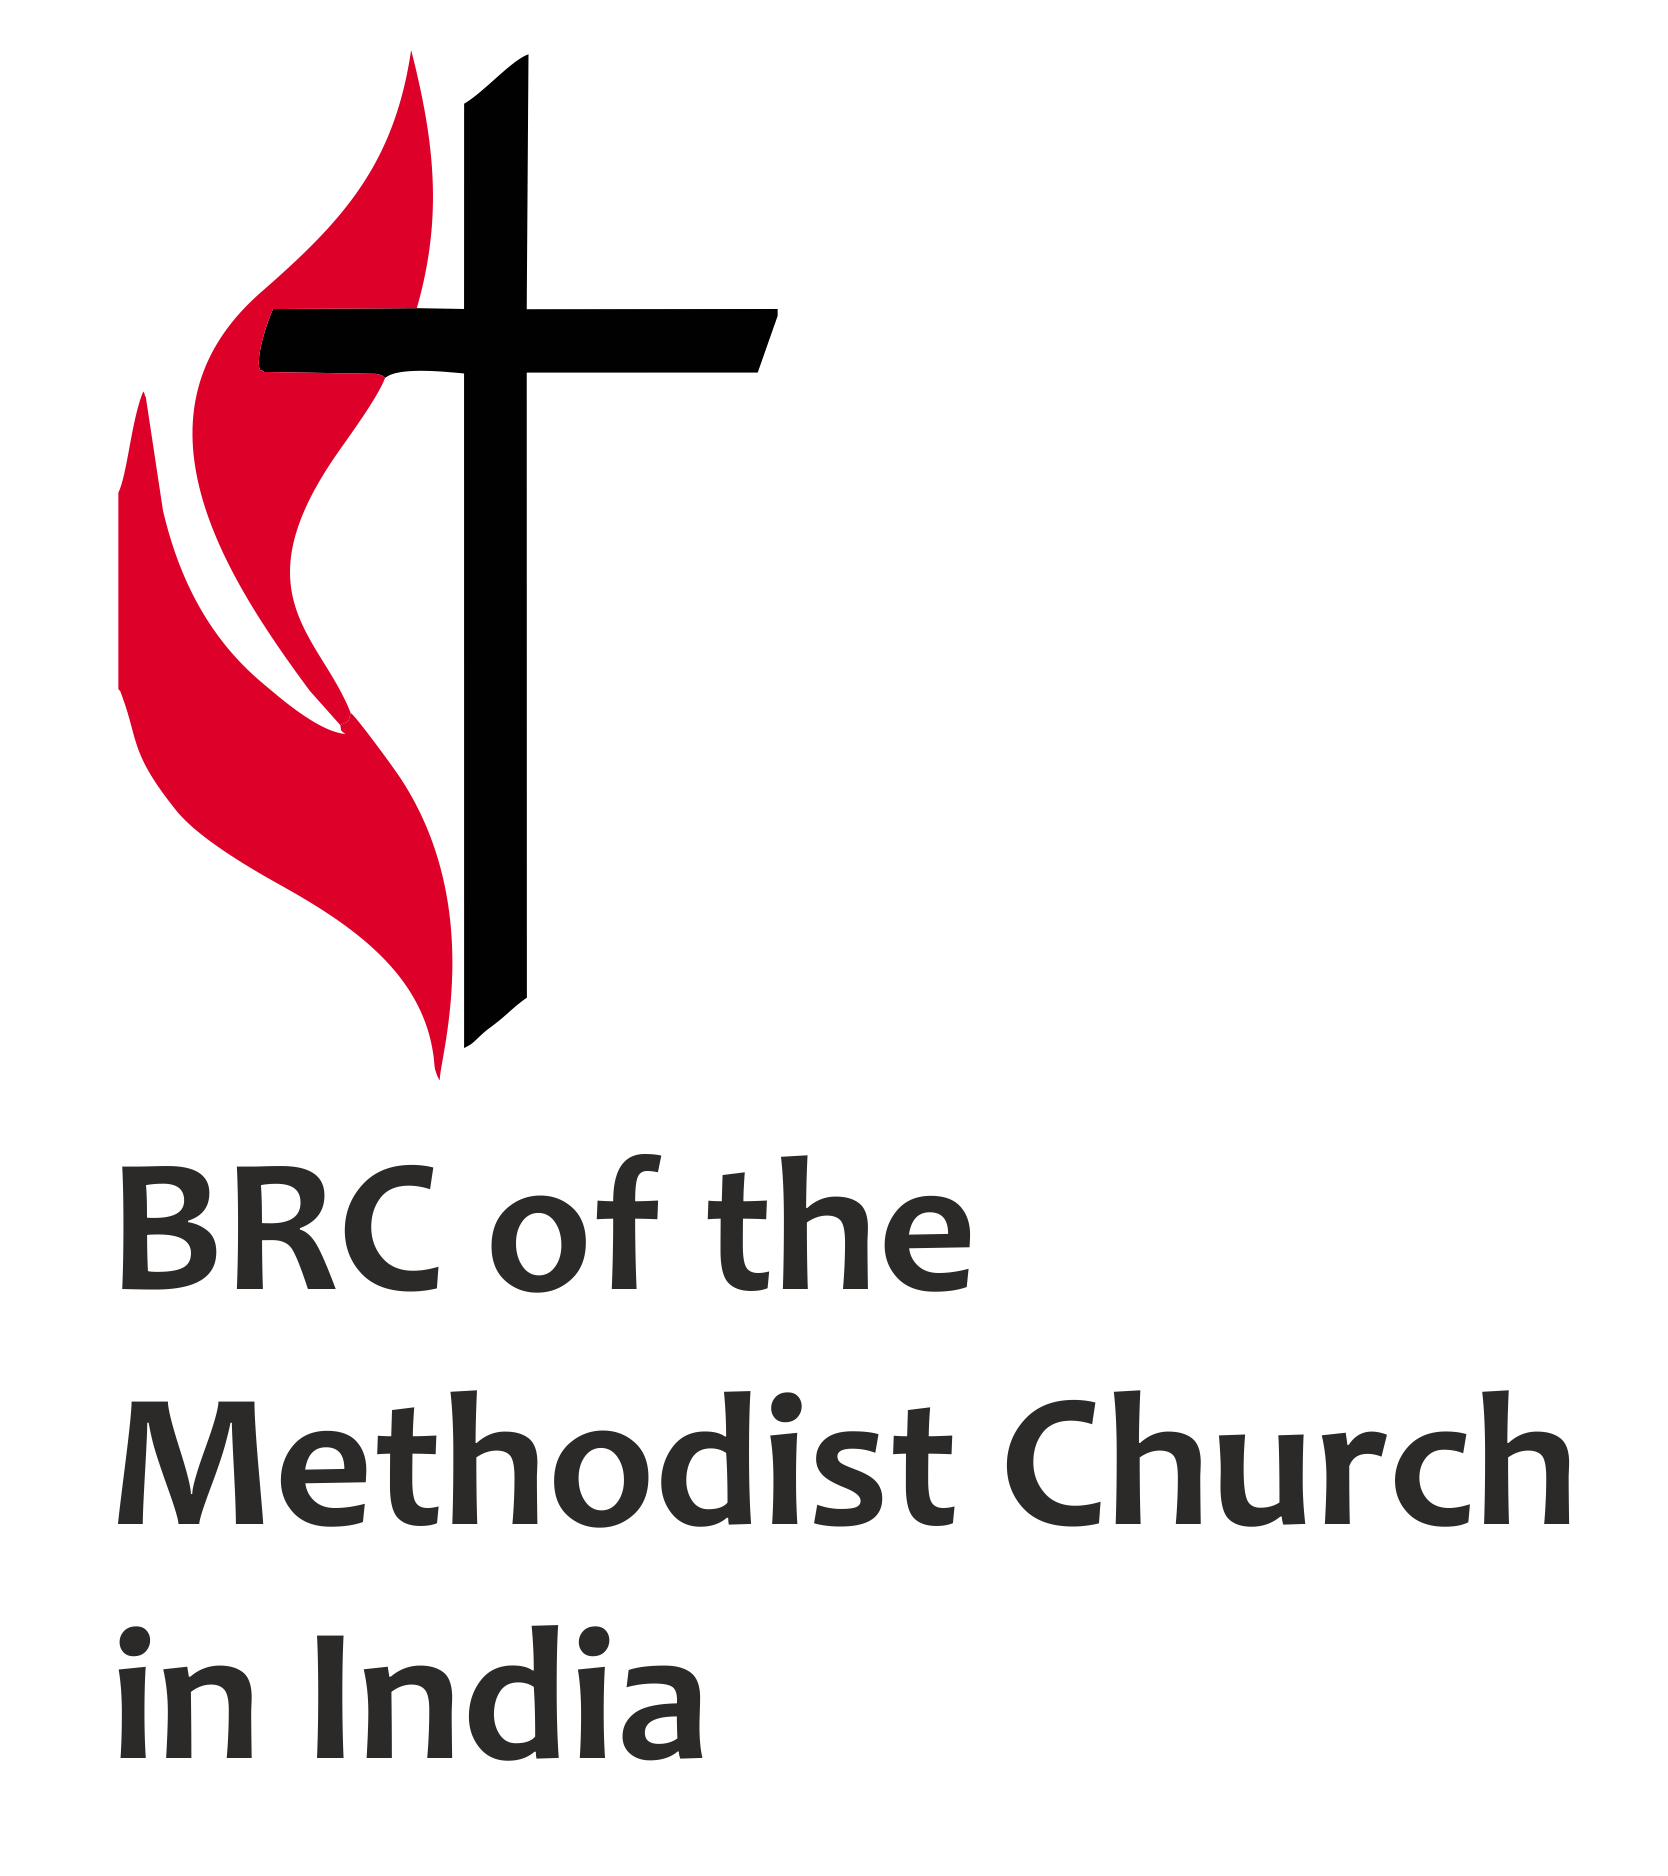 BRC of the Methodist Church in India